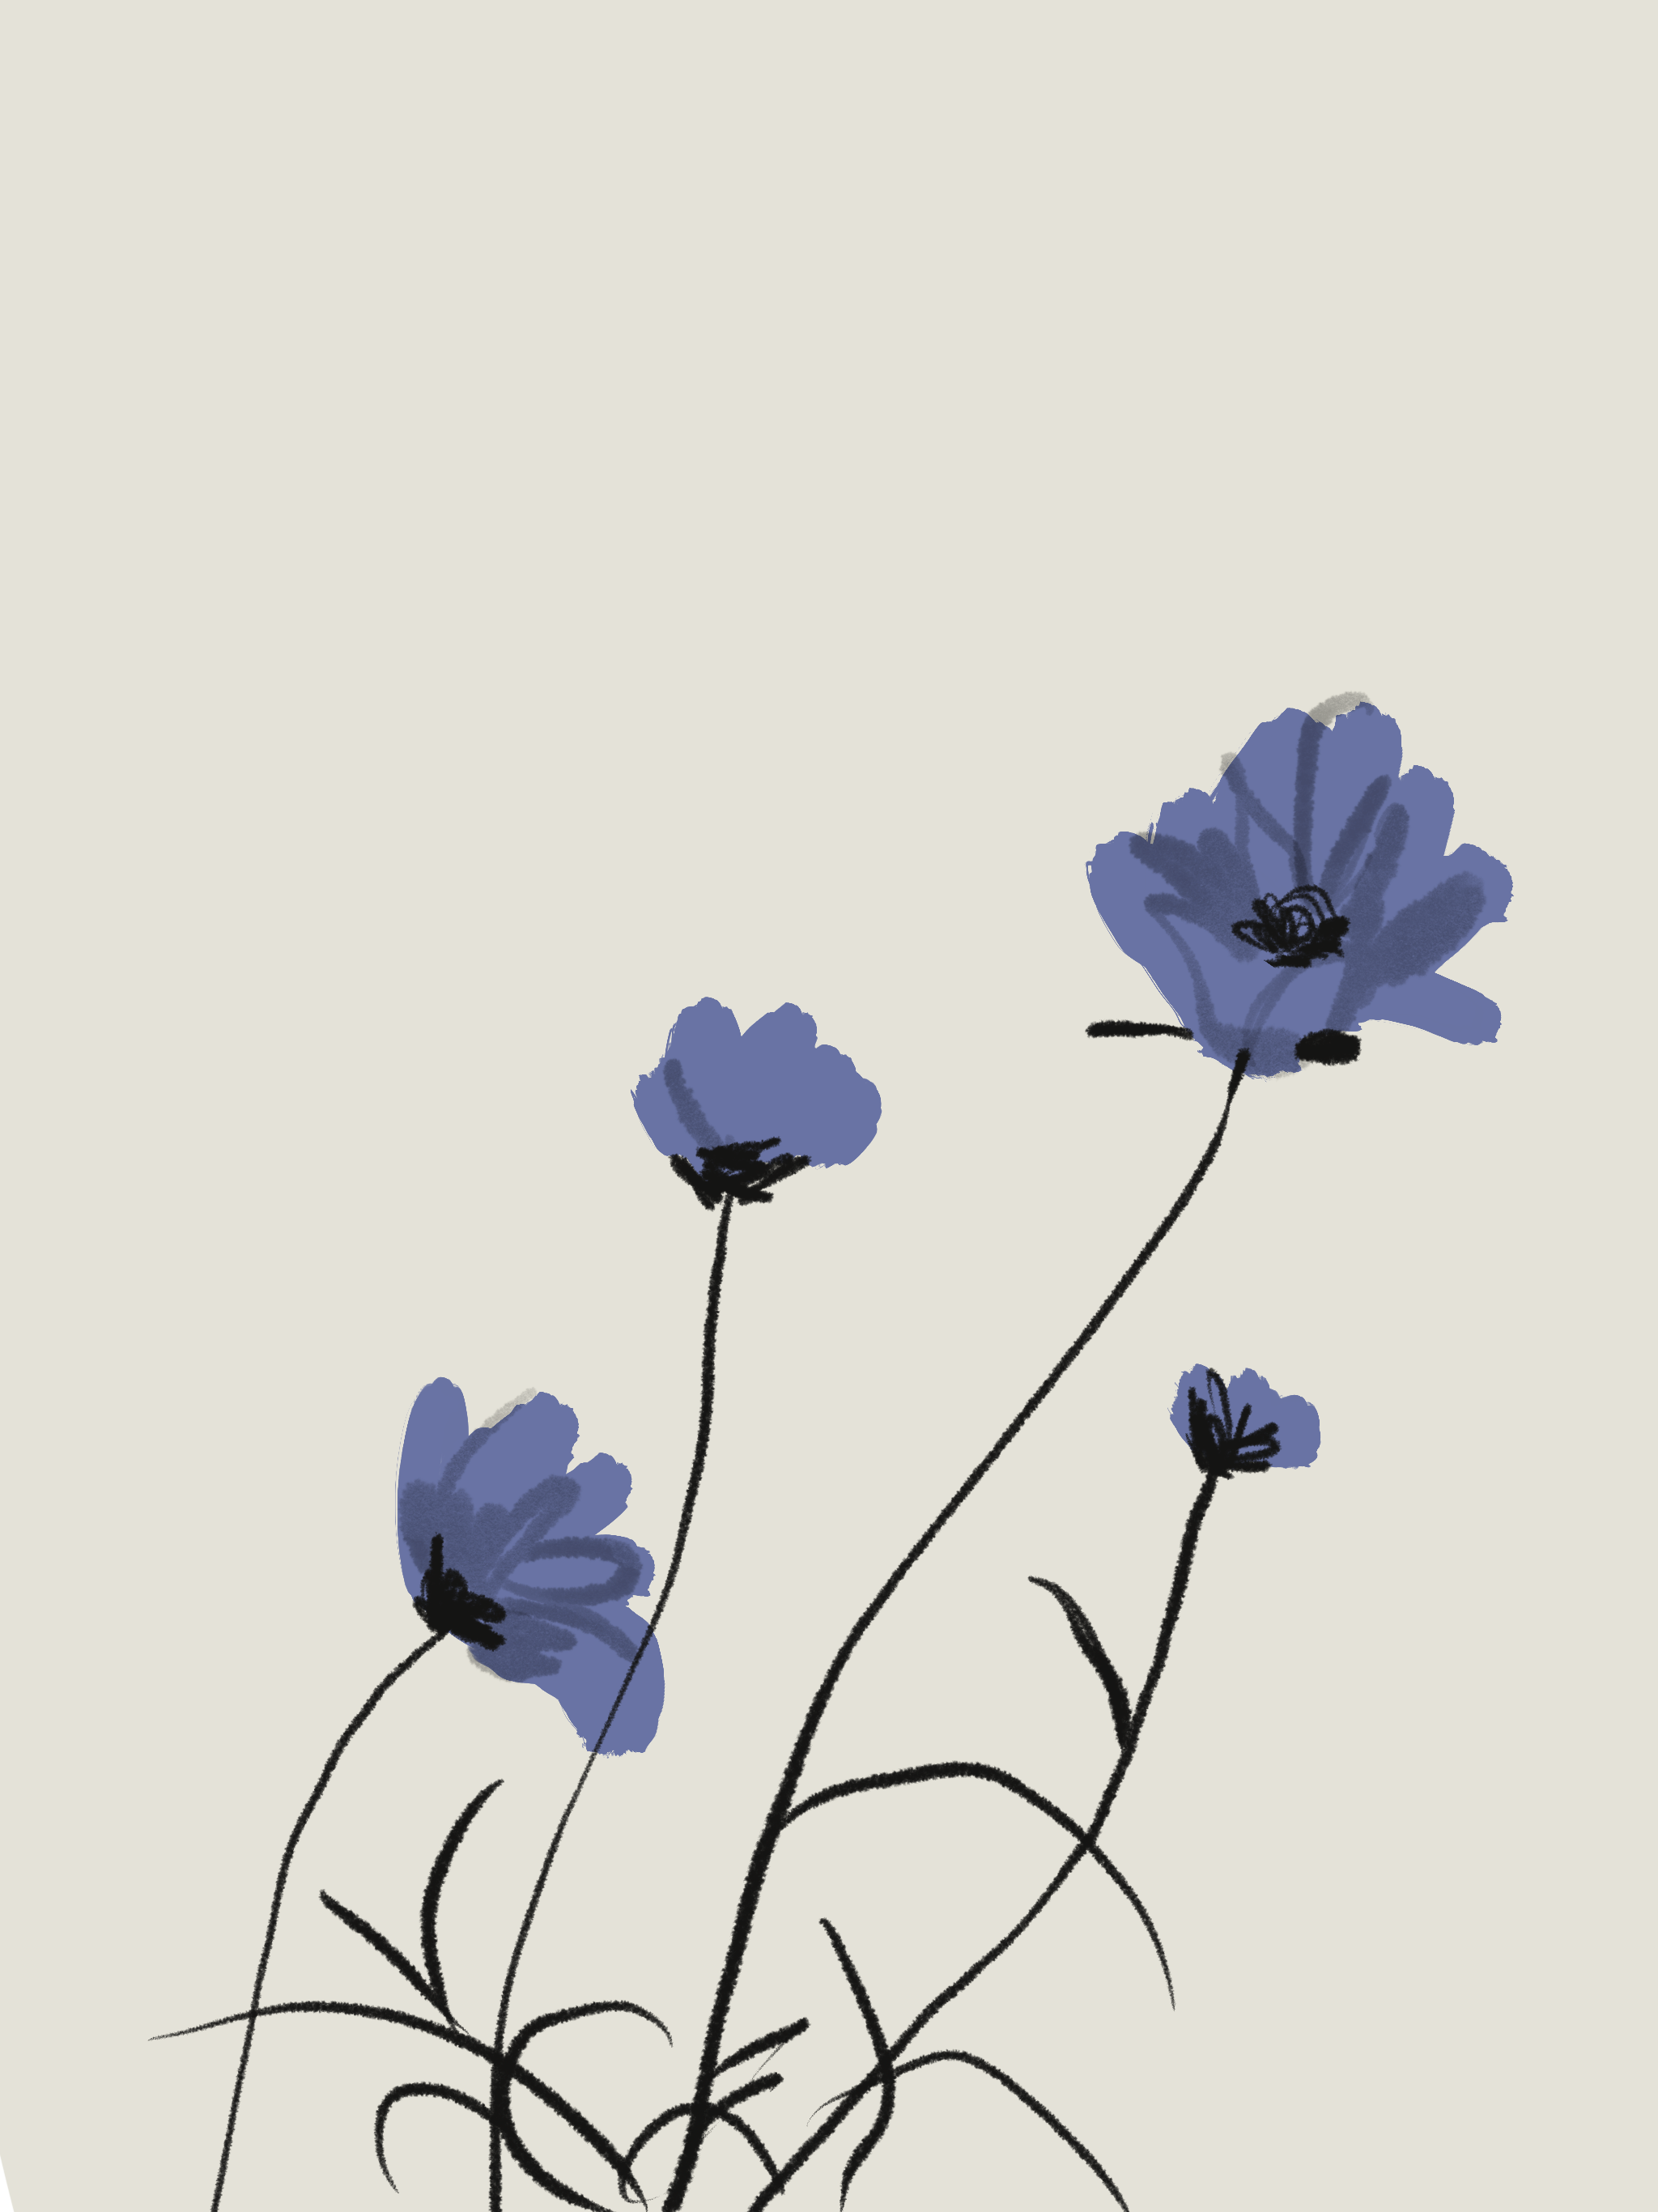 Flowers - illustration by Silvana Mariani